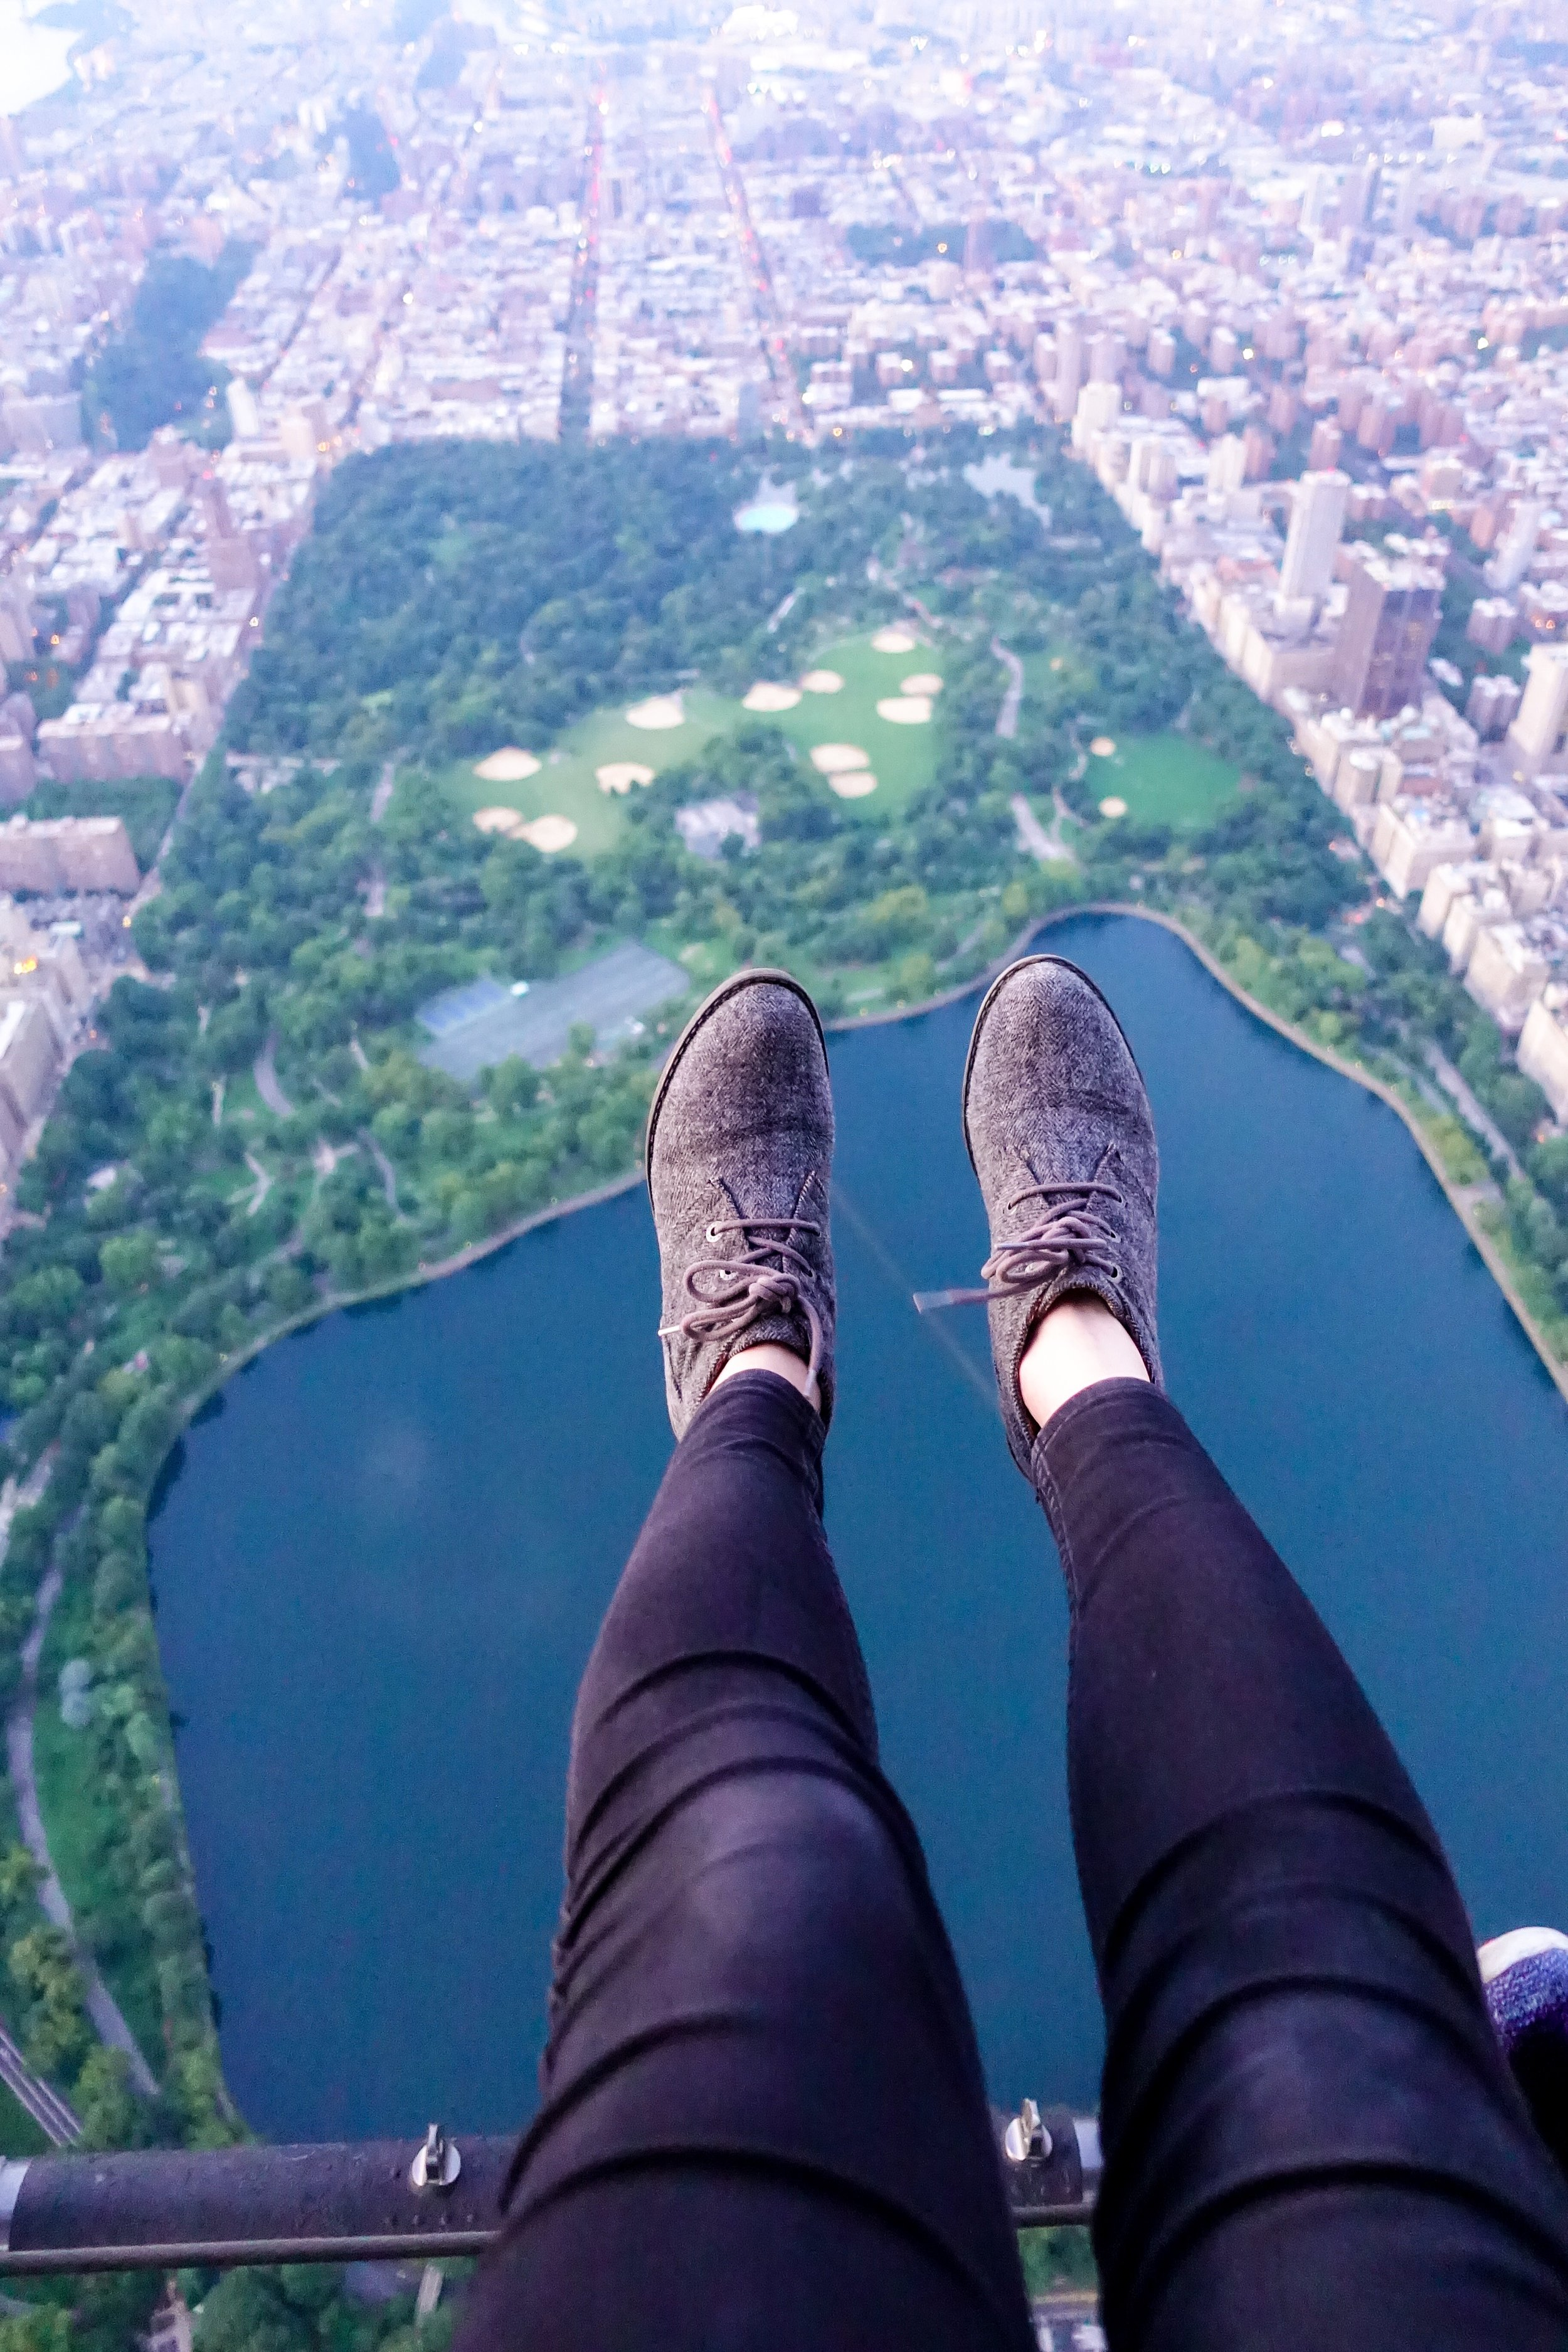 NYC Doors Off Helicopter Tour: The Ultimate New York City